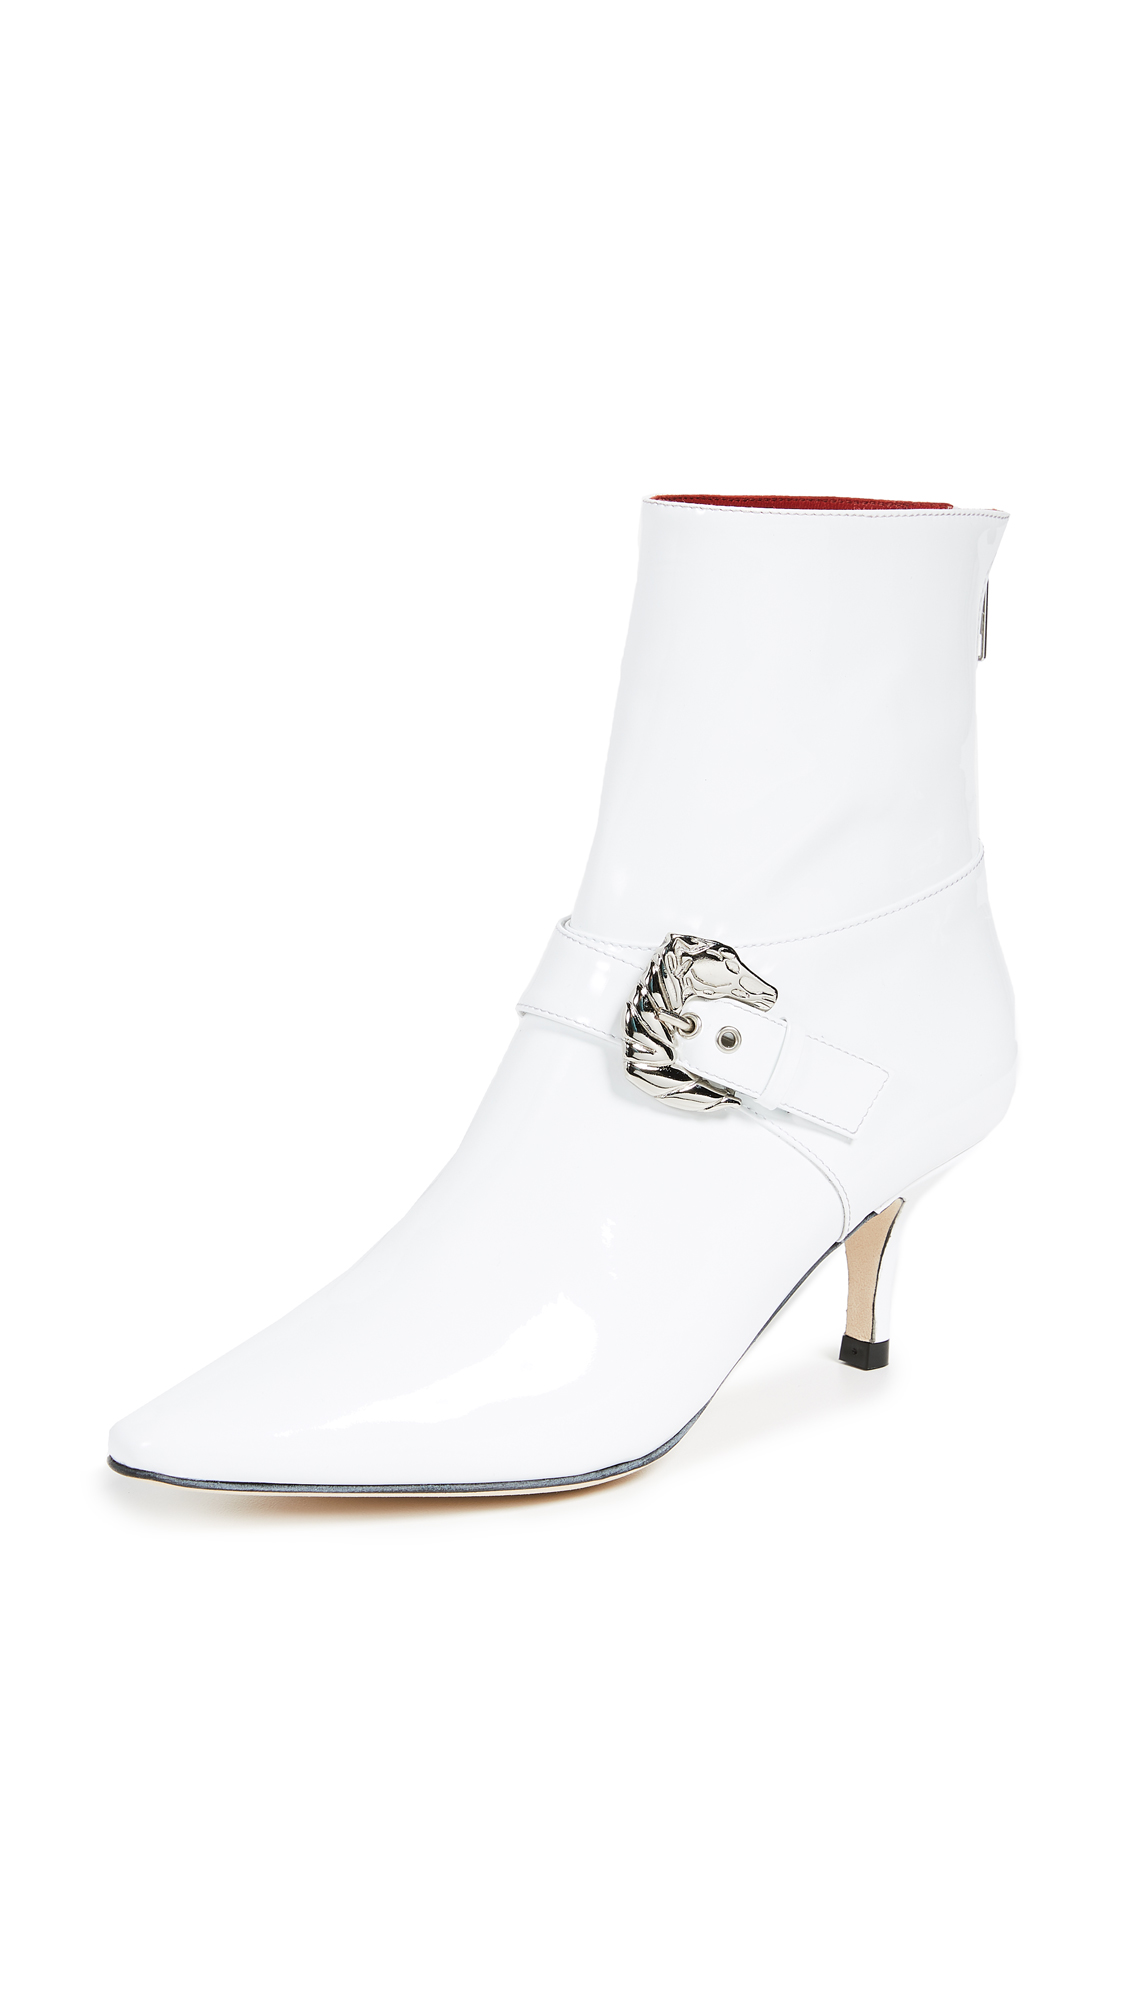 Dorateymur Saloon Boots - White